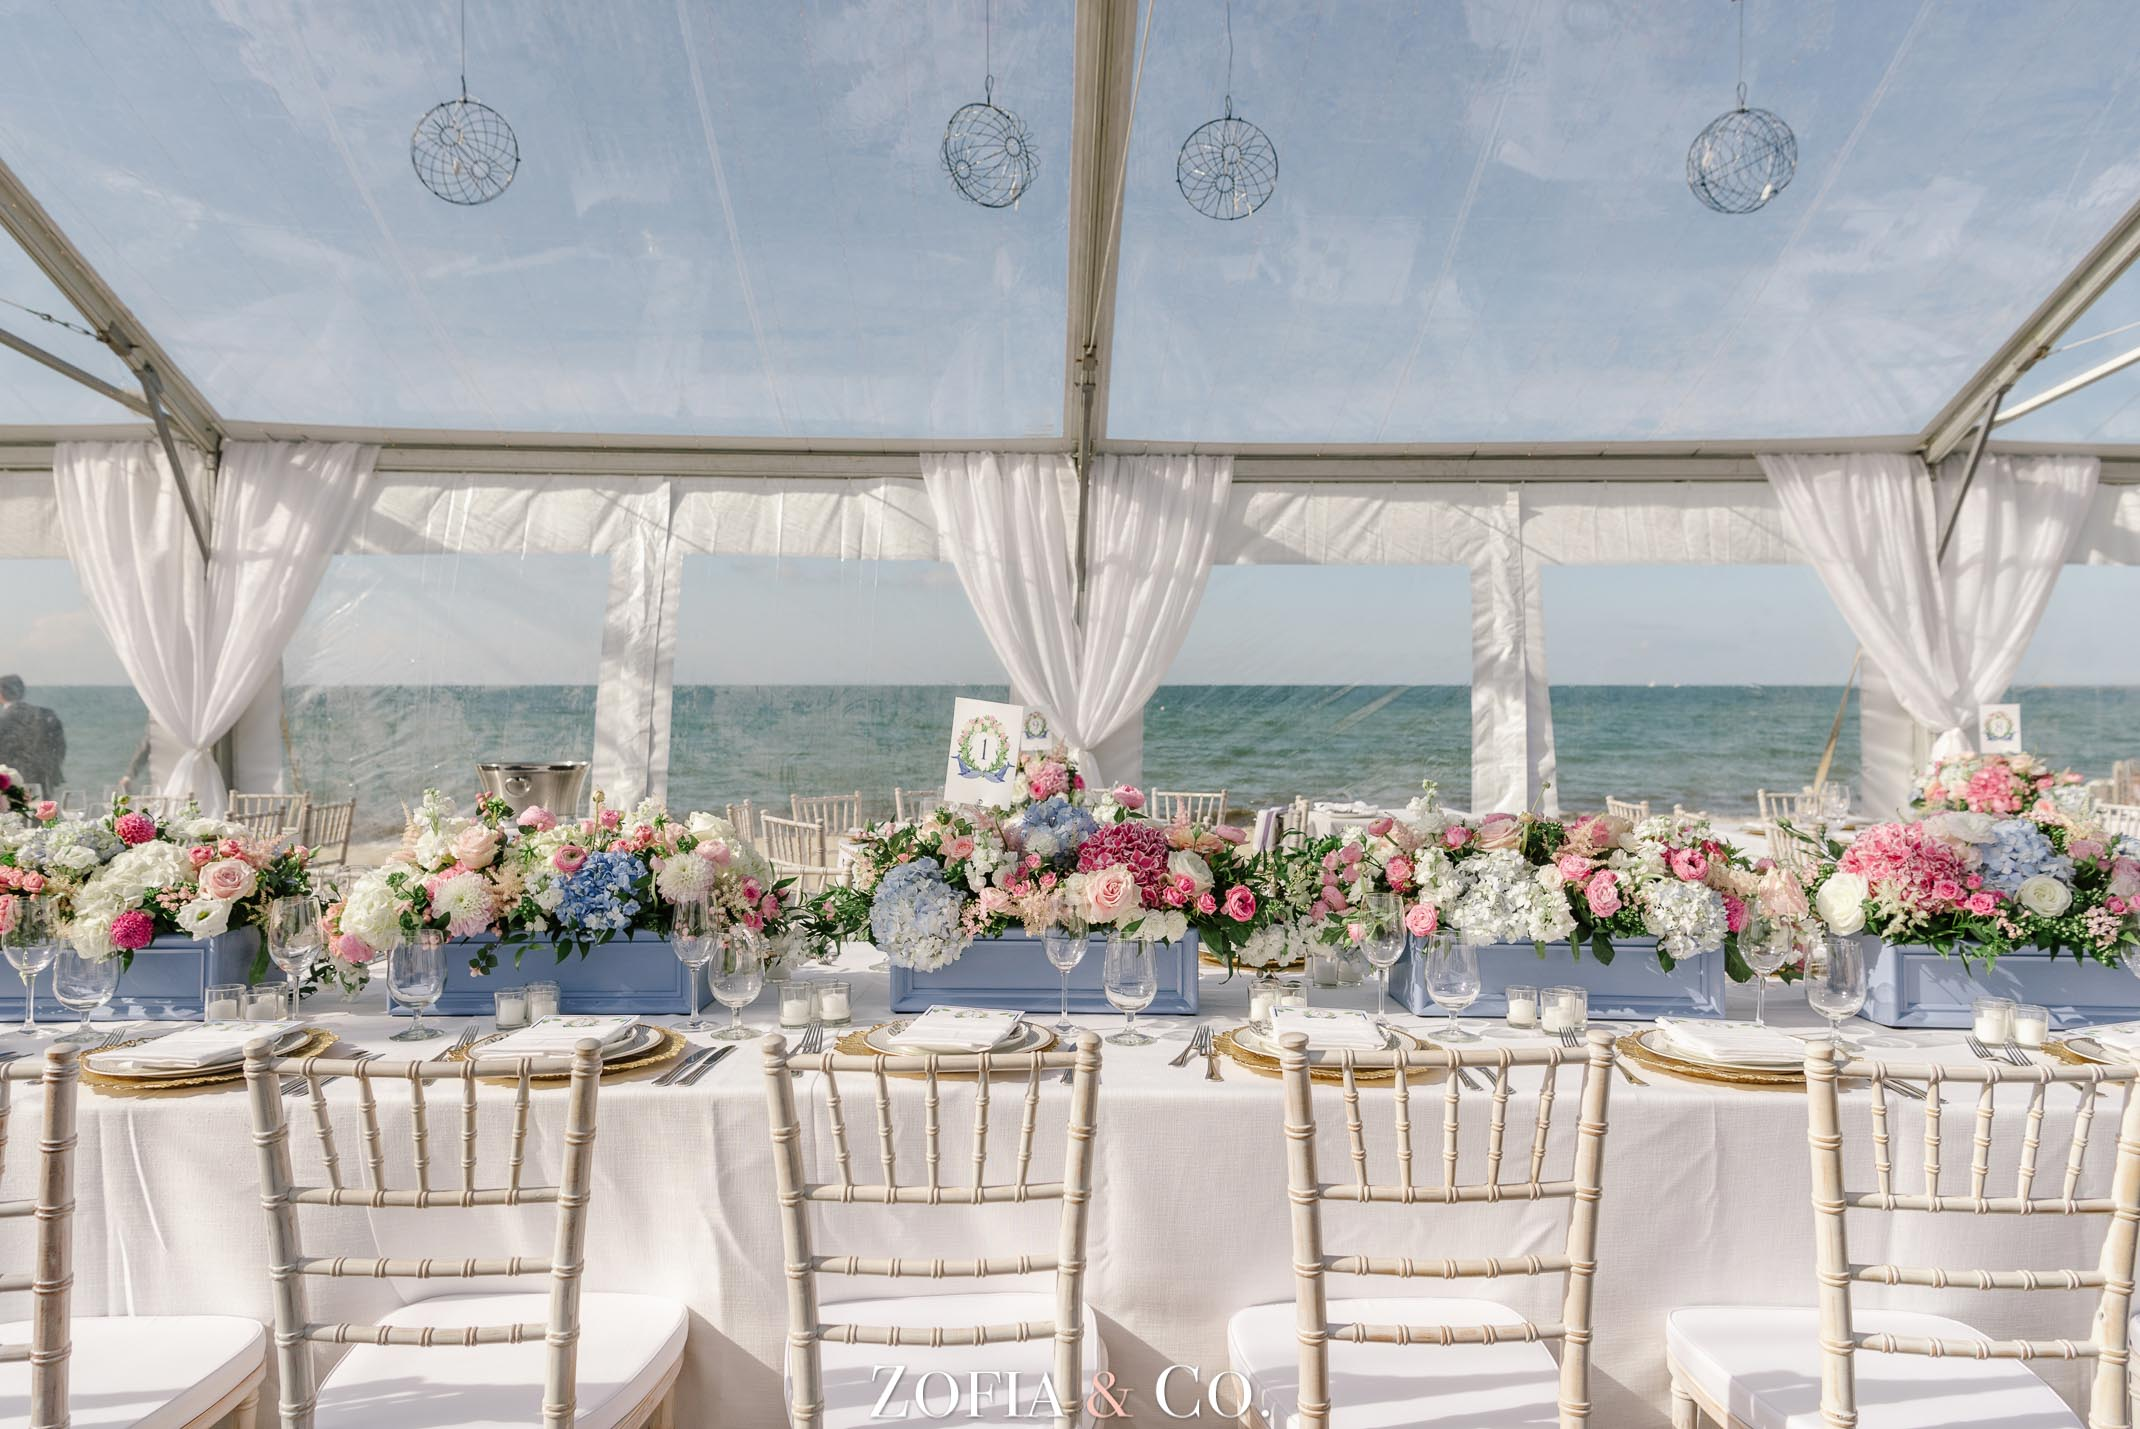 Tags Boss Band David M Handy Events Dmh Wedding Flowers On Chestnut Galley Beach Nantucket Photographer Photography